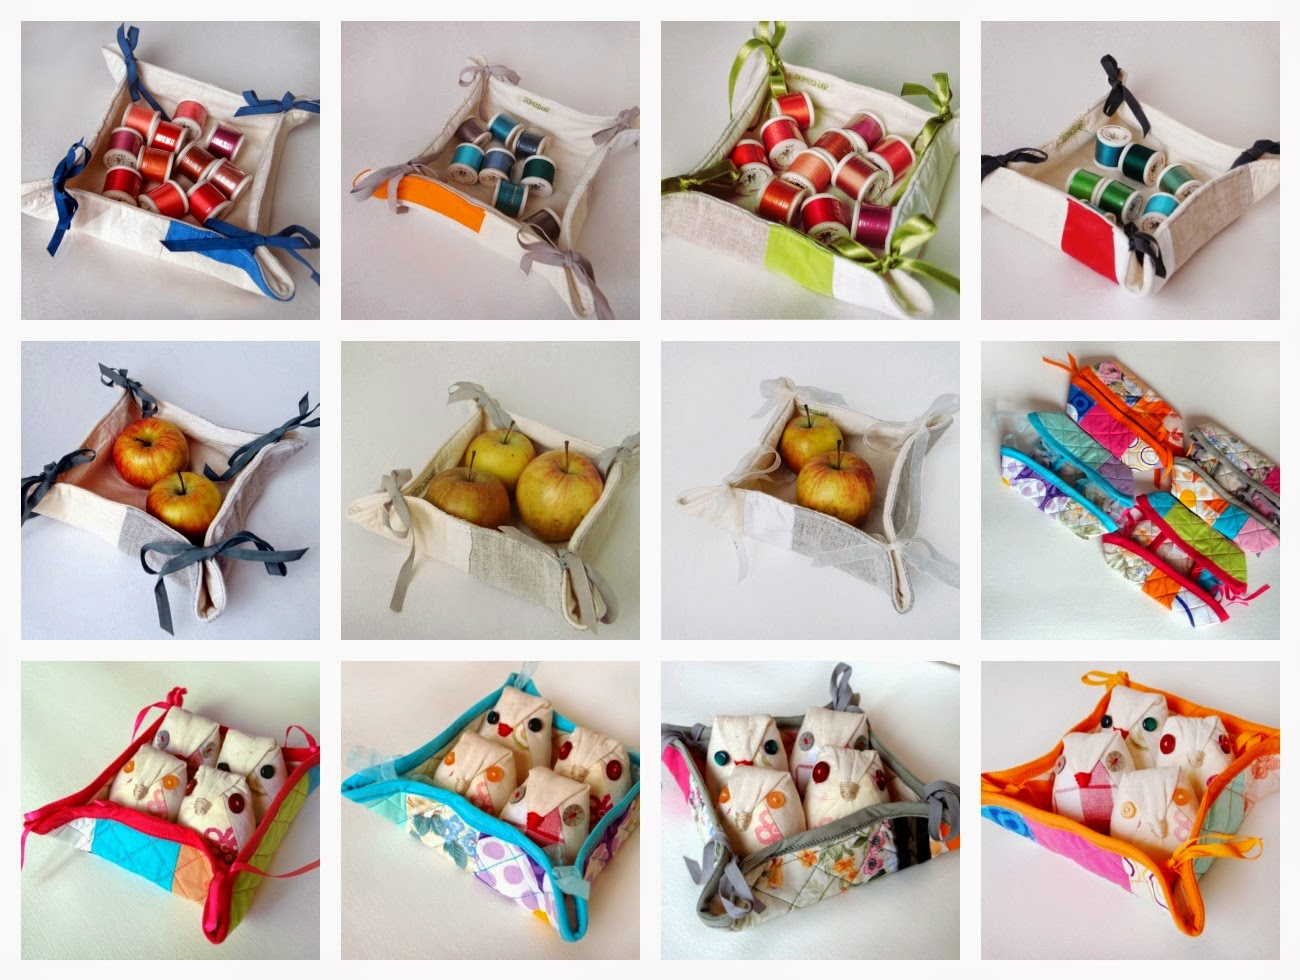 fabreic bread baskets or fabric storaze boxes by Domoshar Studios